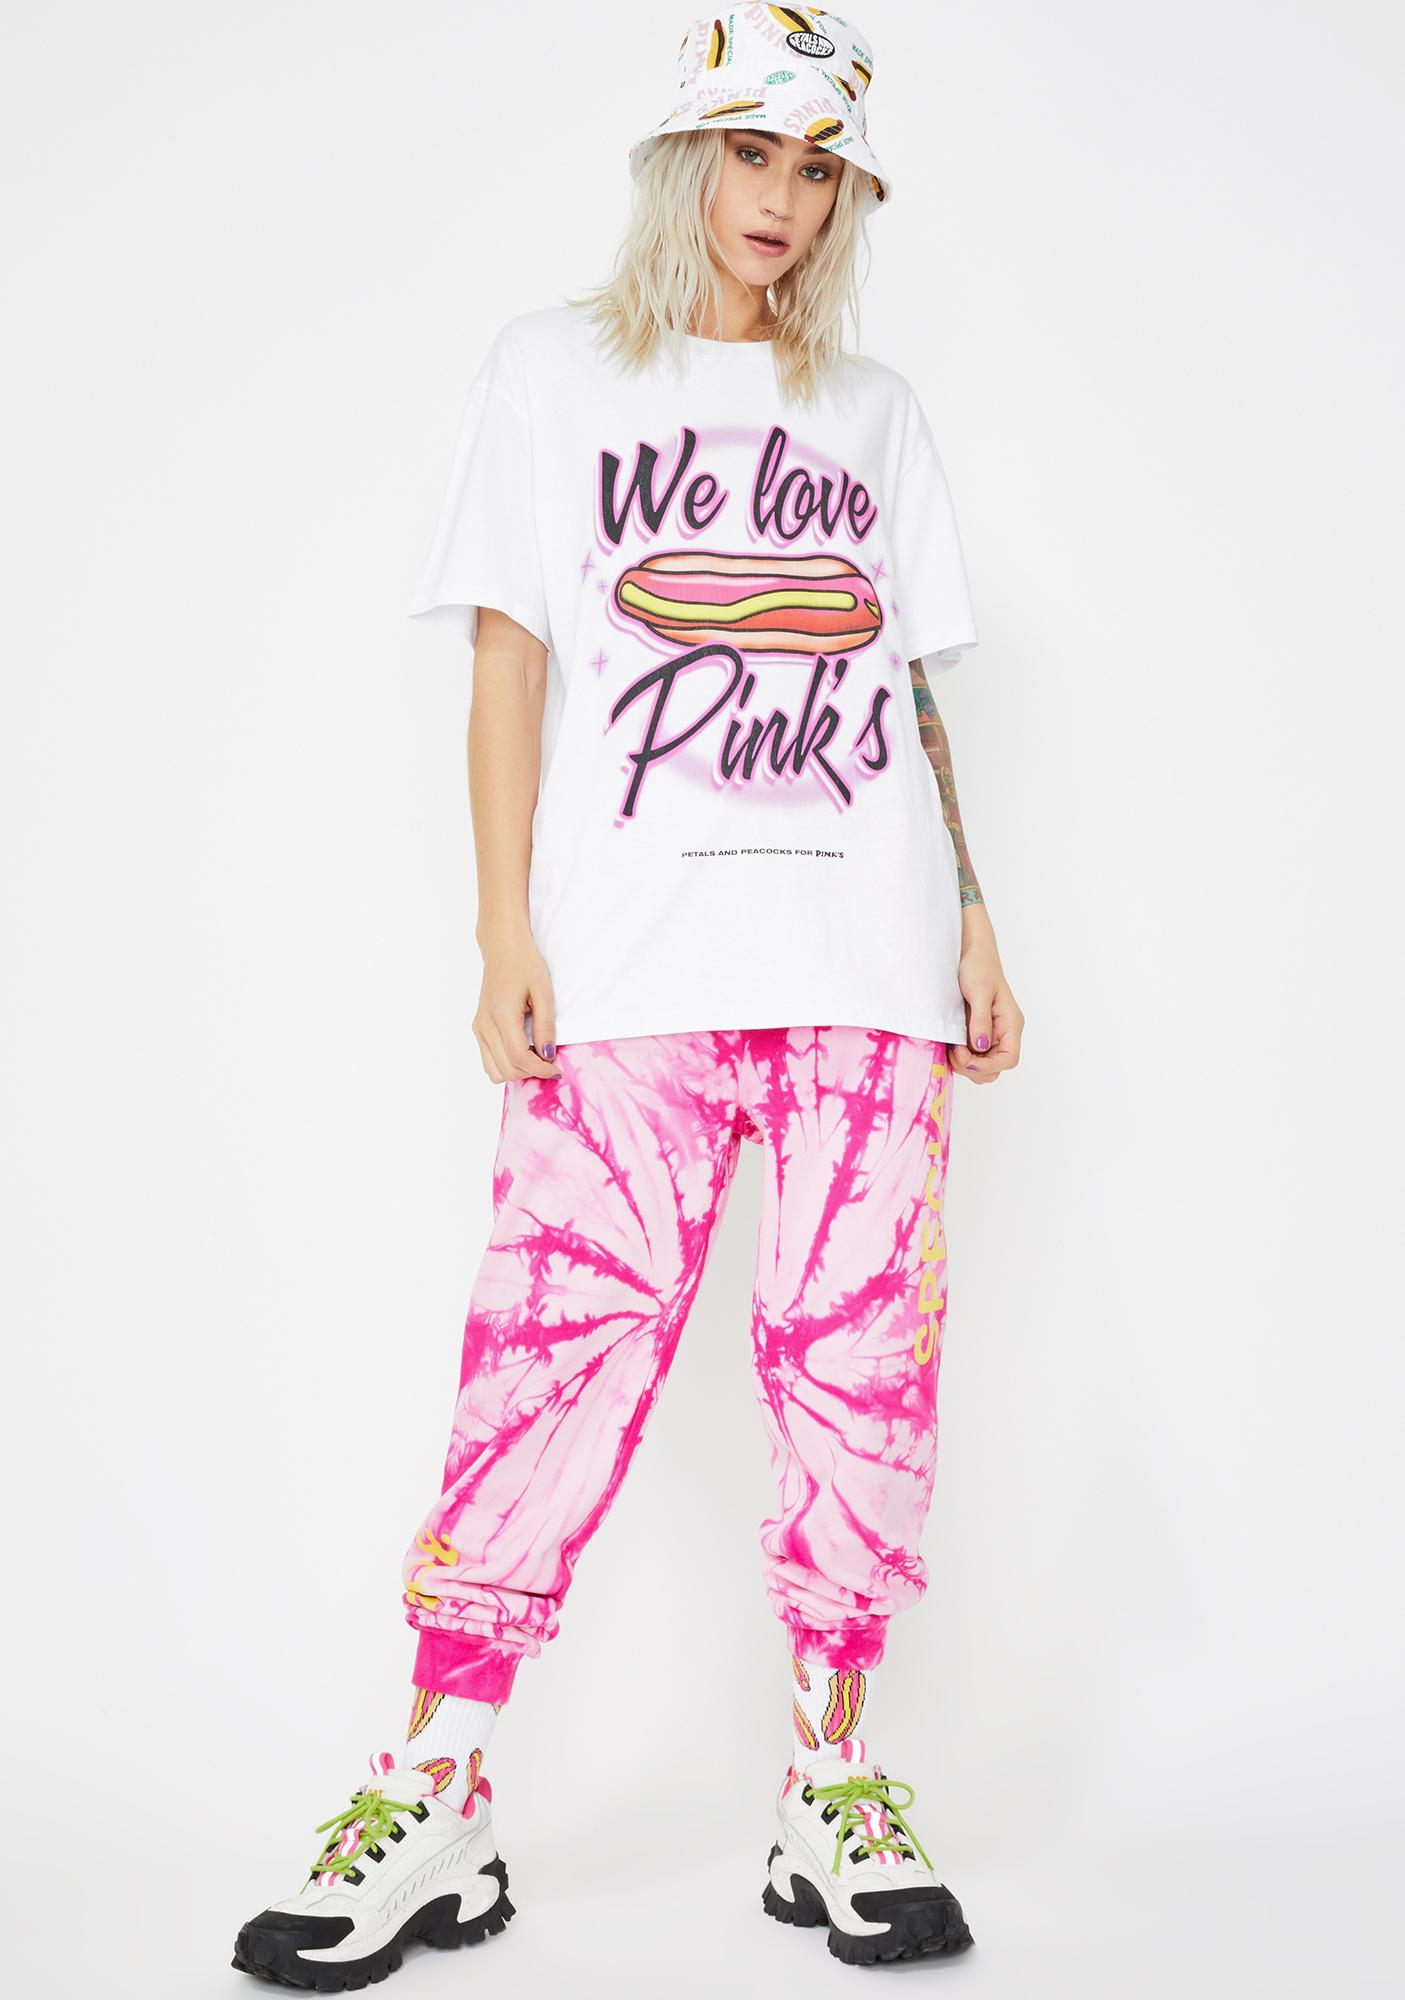 Petals and Peacocks X Pink's Hot Dogs We Love Pink's Airbrush Tee